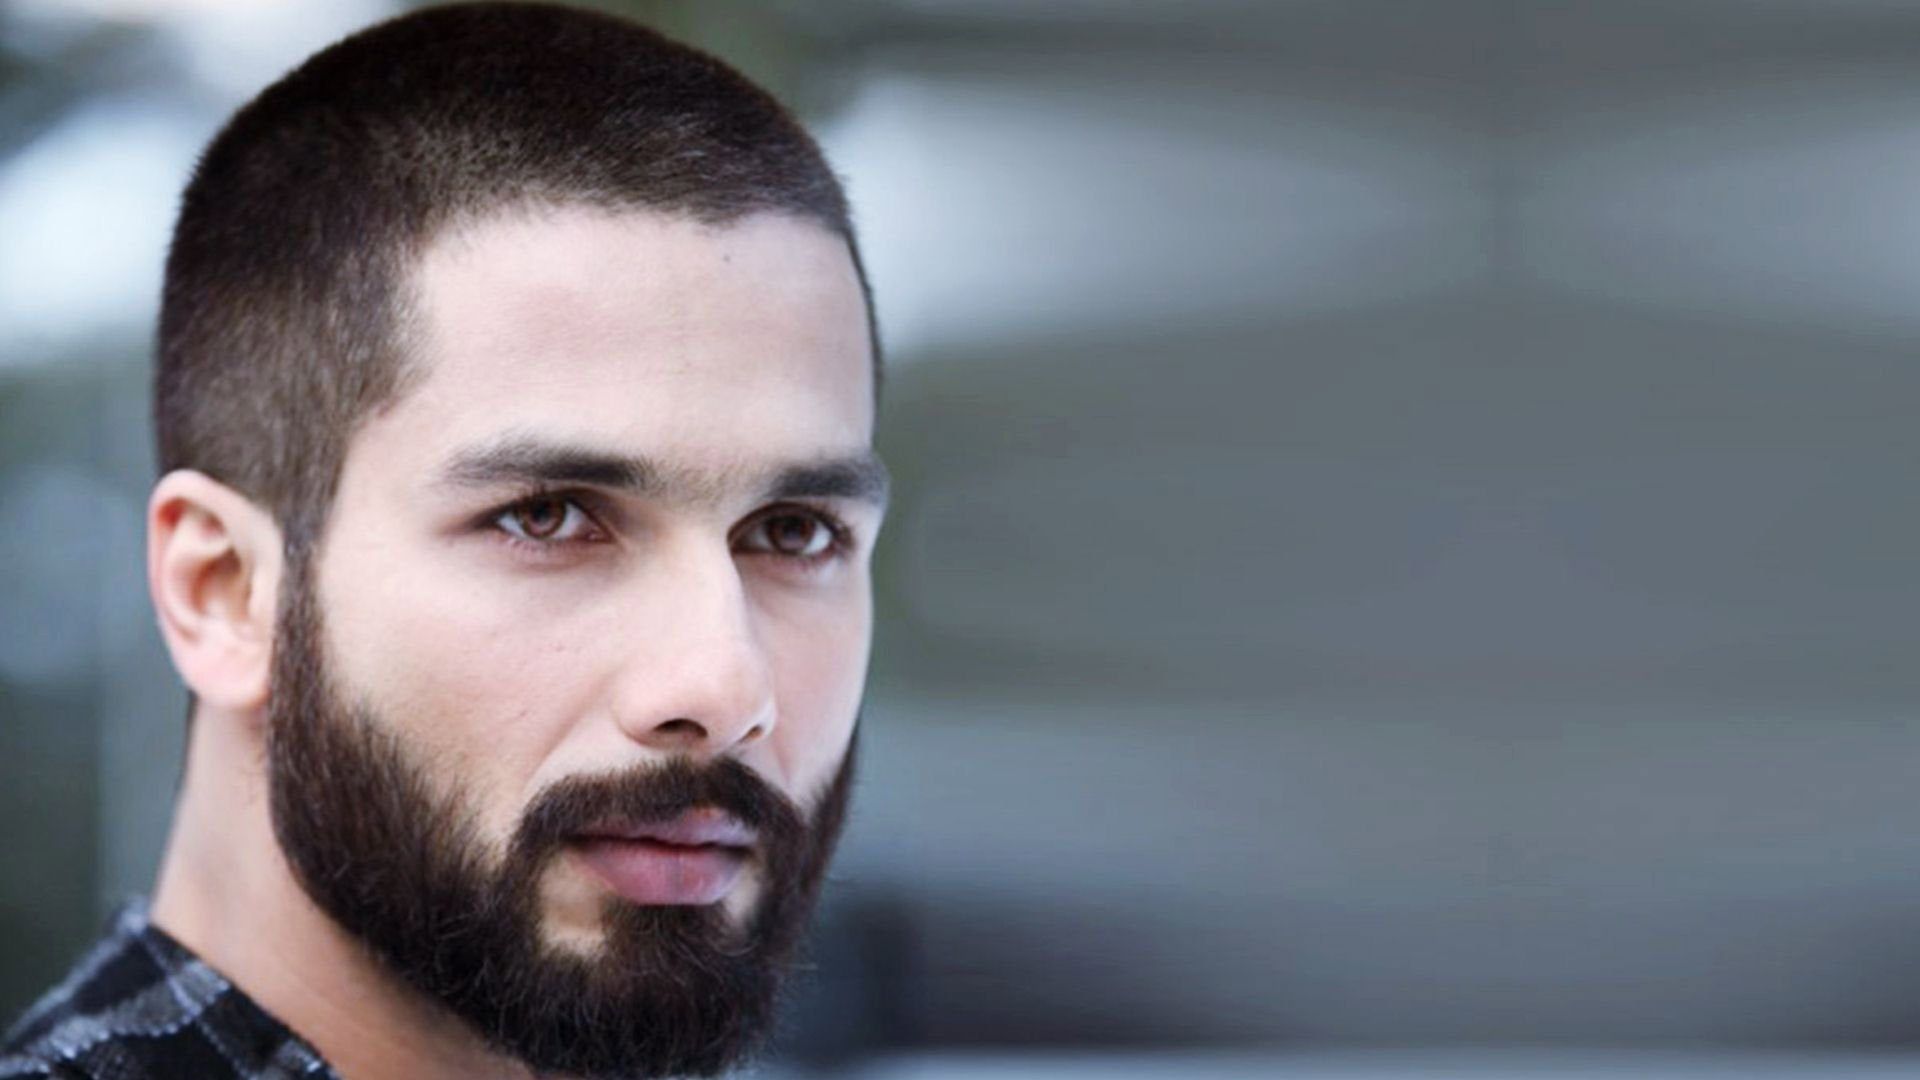 Shahid Kapoor Buzz Hairstyle